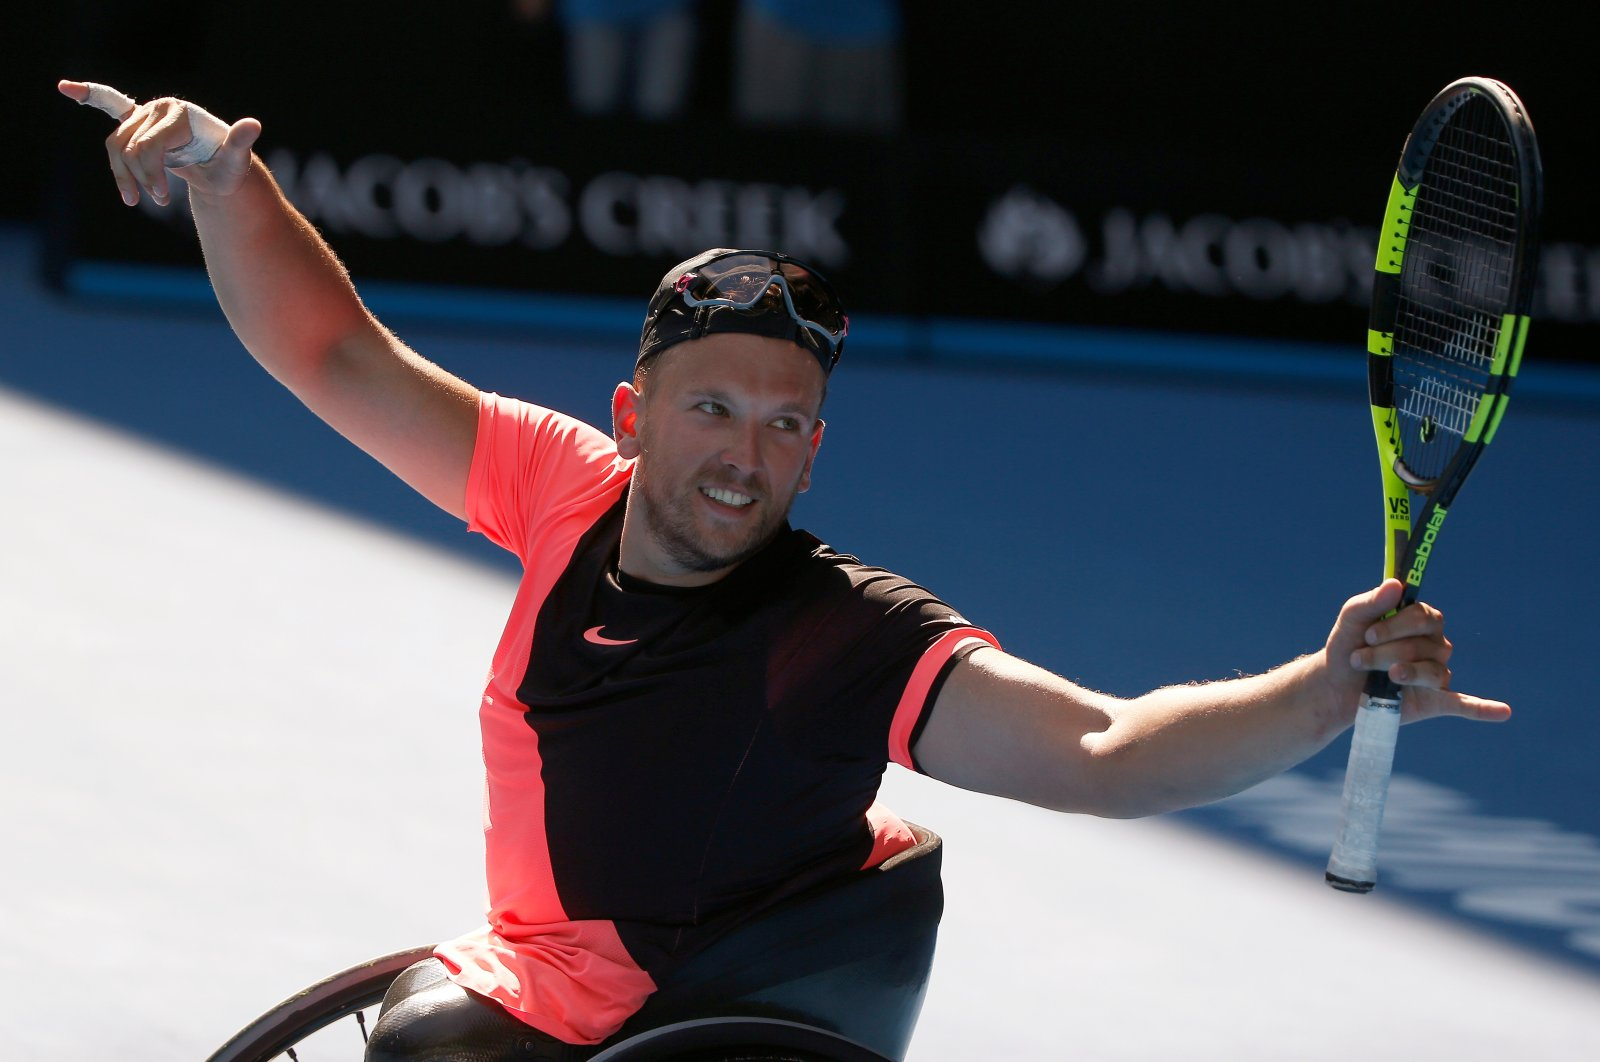 Dylan Alcott of Australia celebrates winning against David Wagner of the U.S. during Australian Open January 27, 2018. (Reuters Photo)